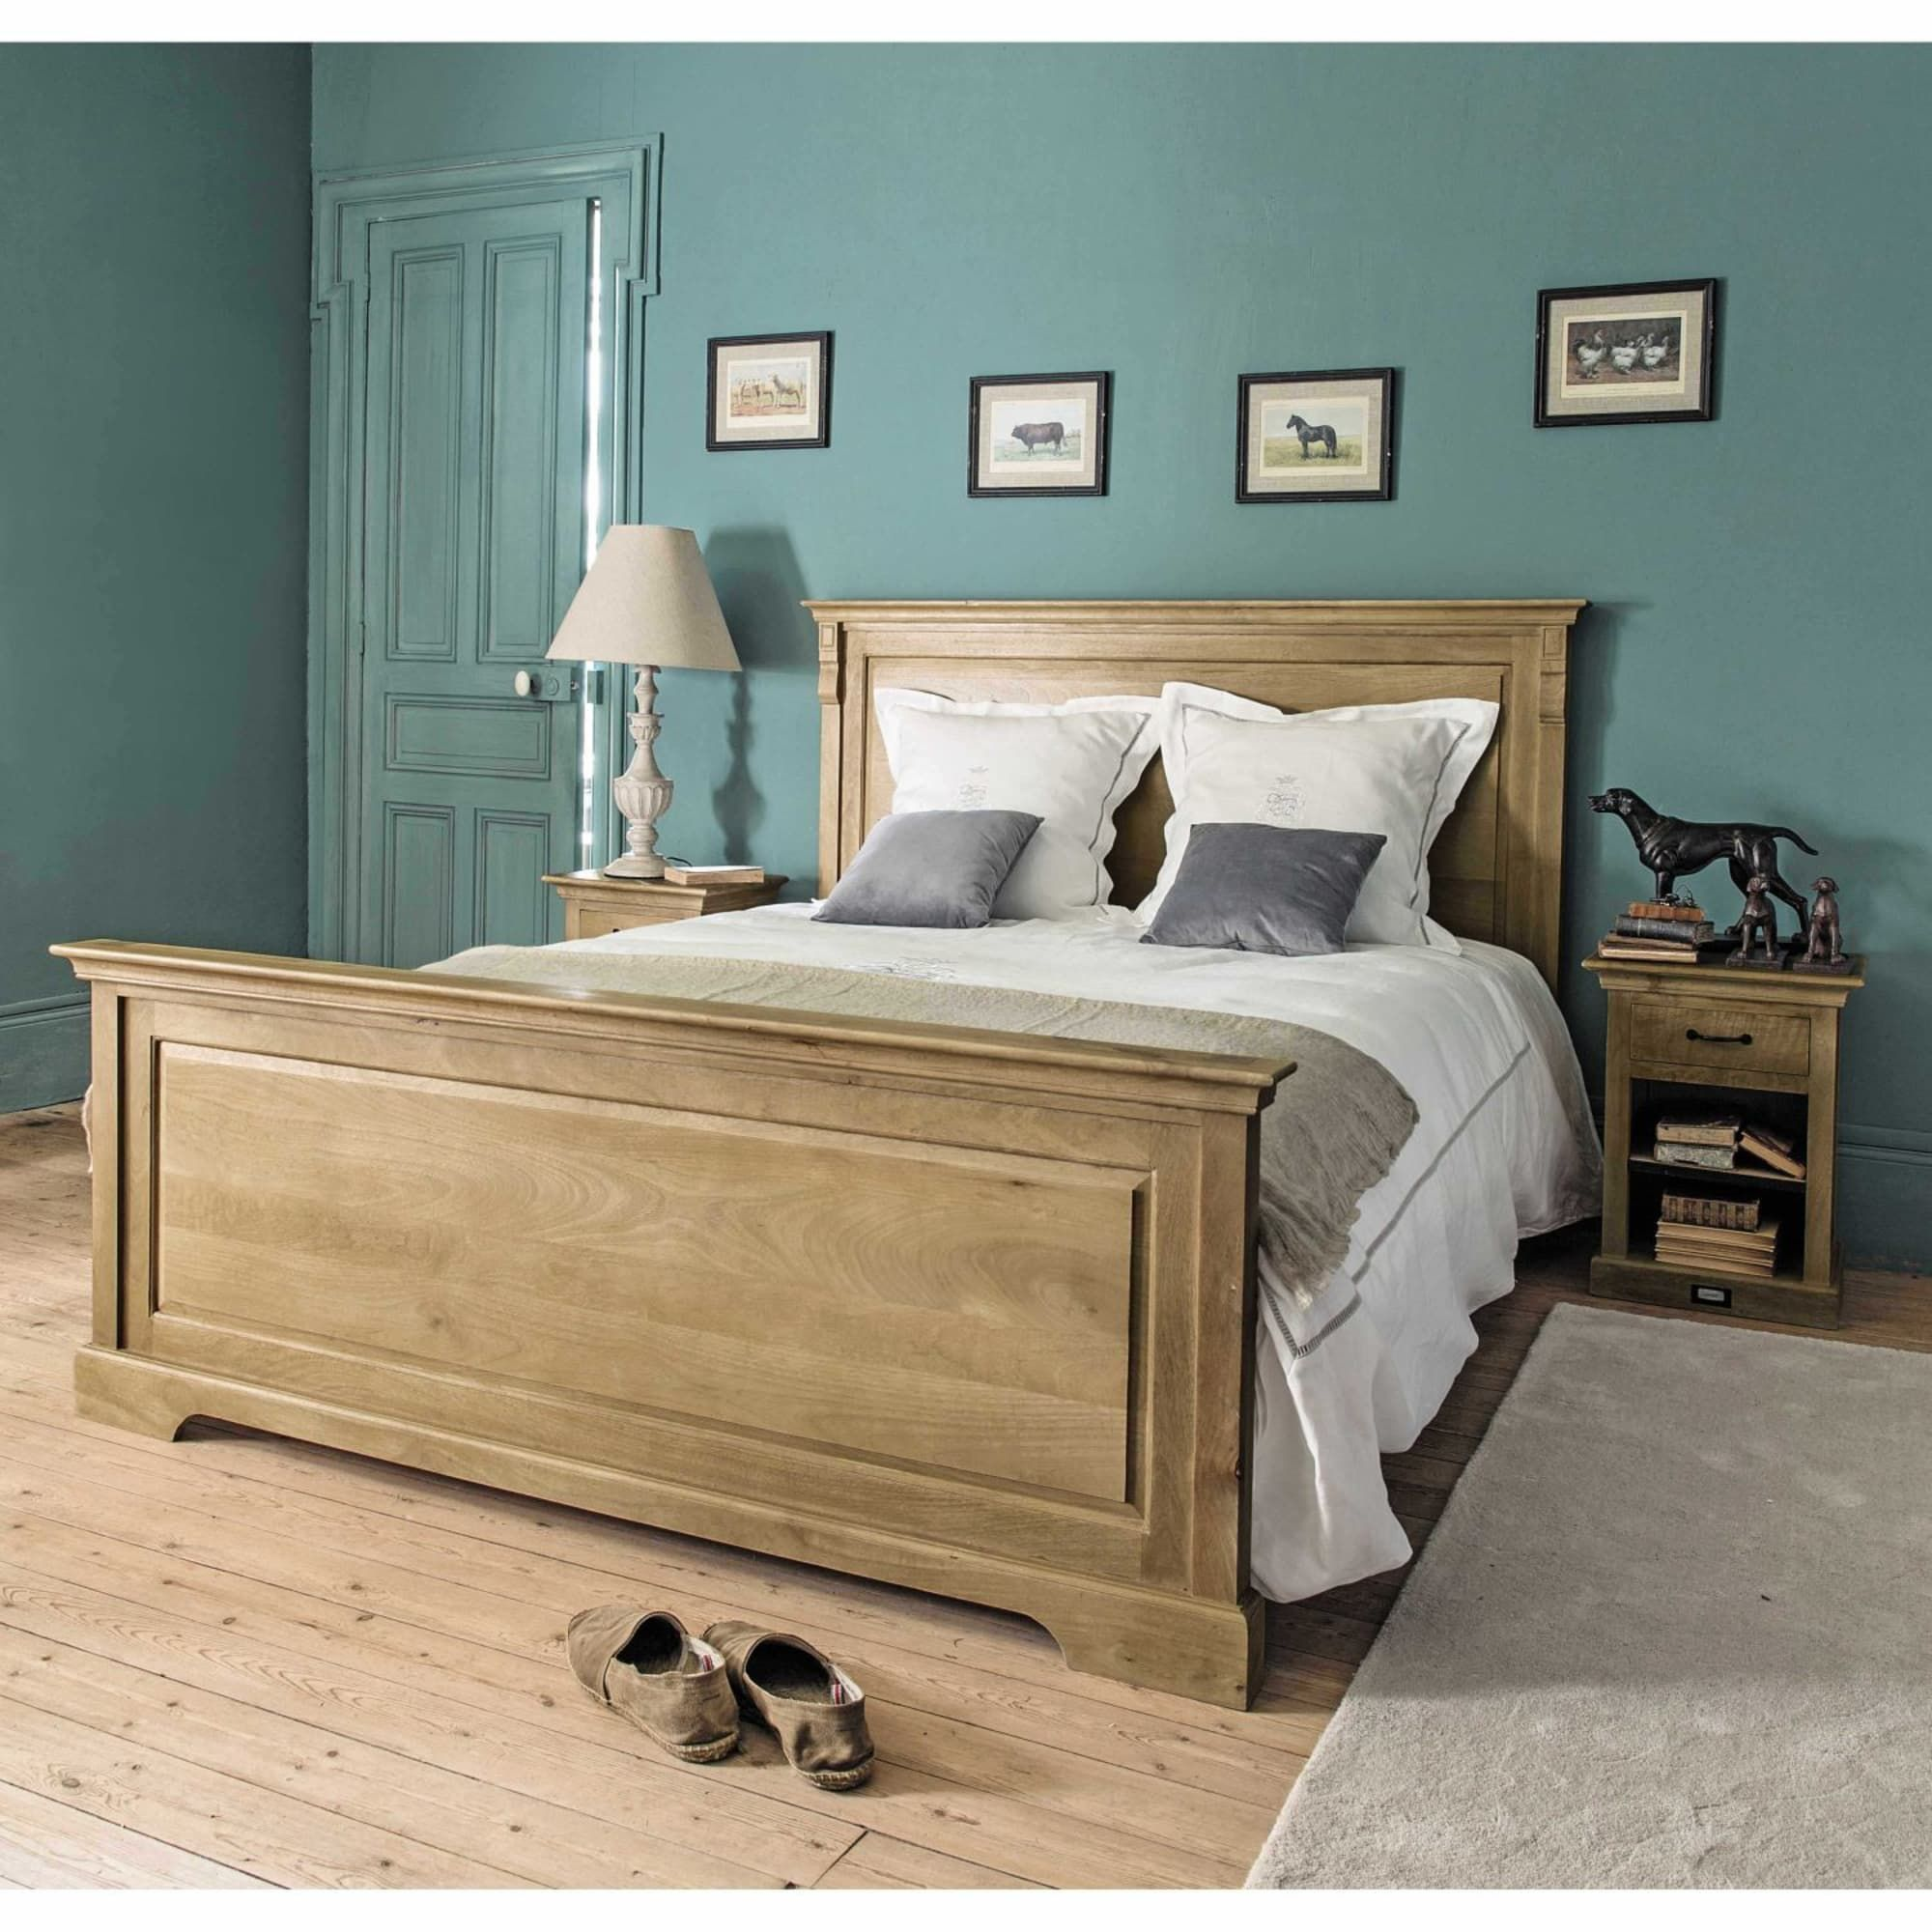 Solid Mango Wood 160 x 200 King Size Bed Wood bed design